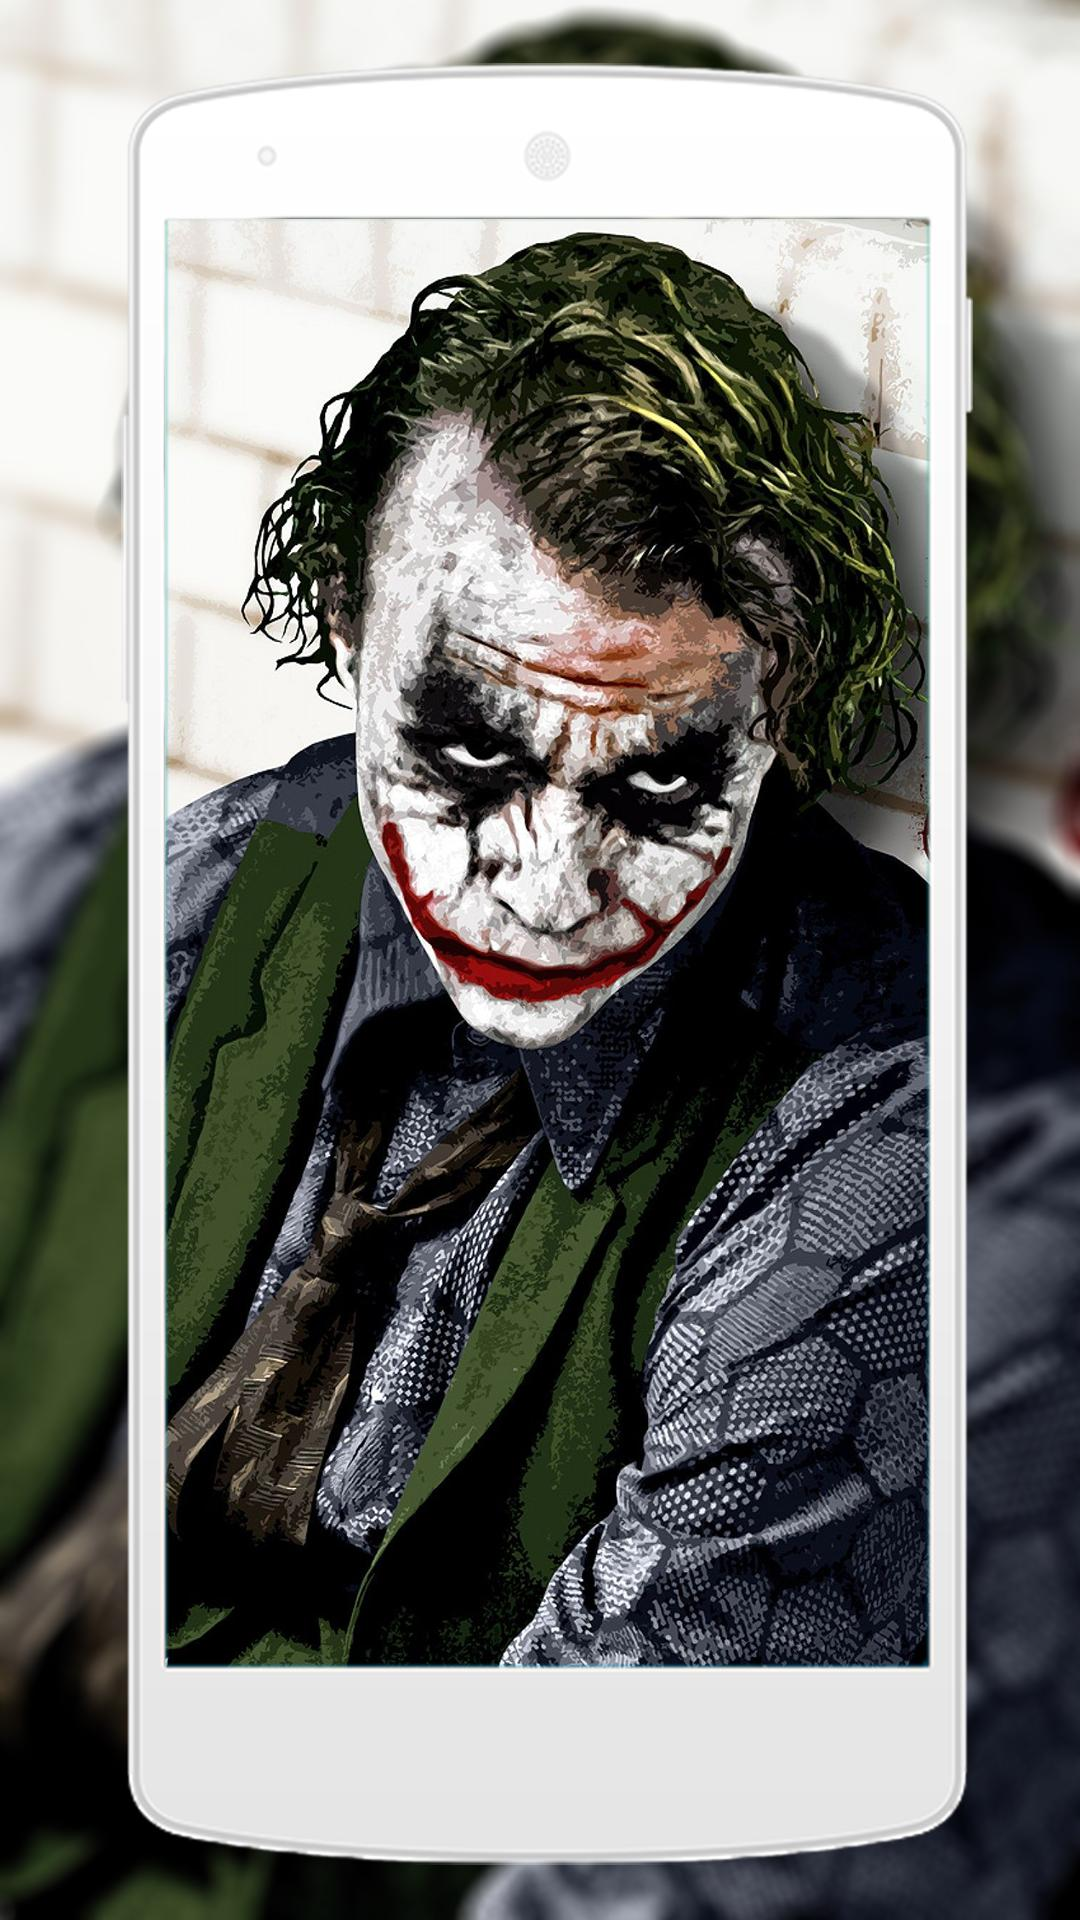 Joker Wallpapers Hd 4k For Android Apk Download